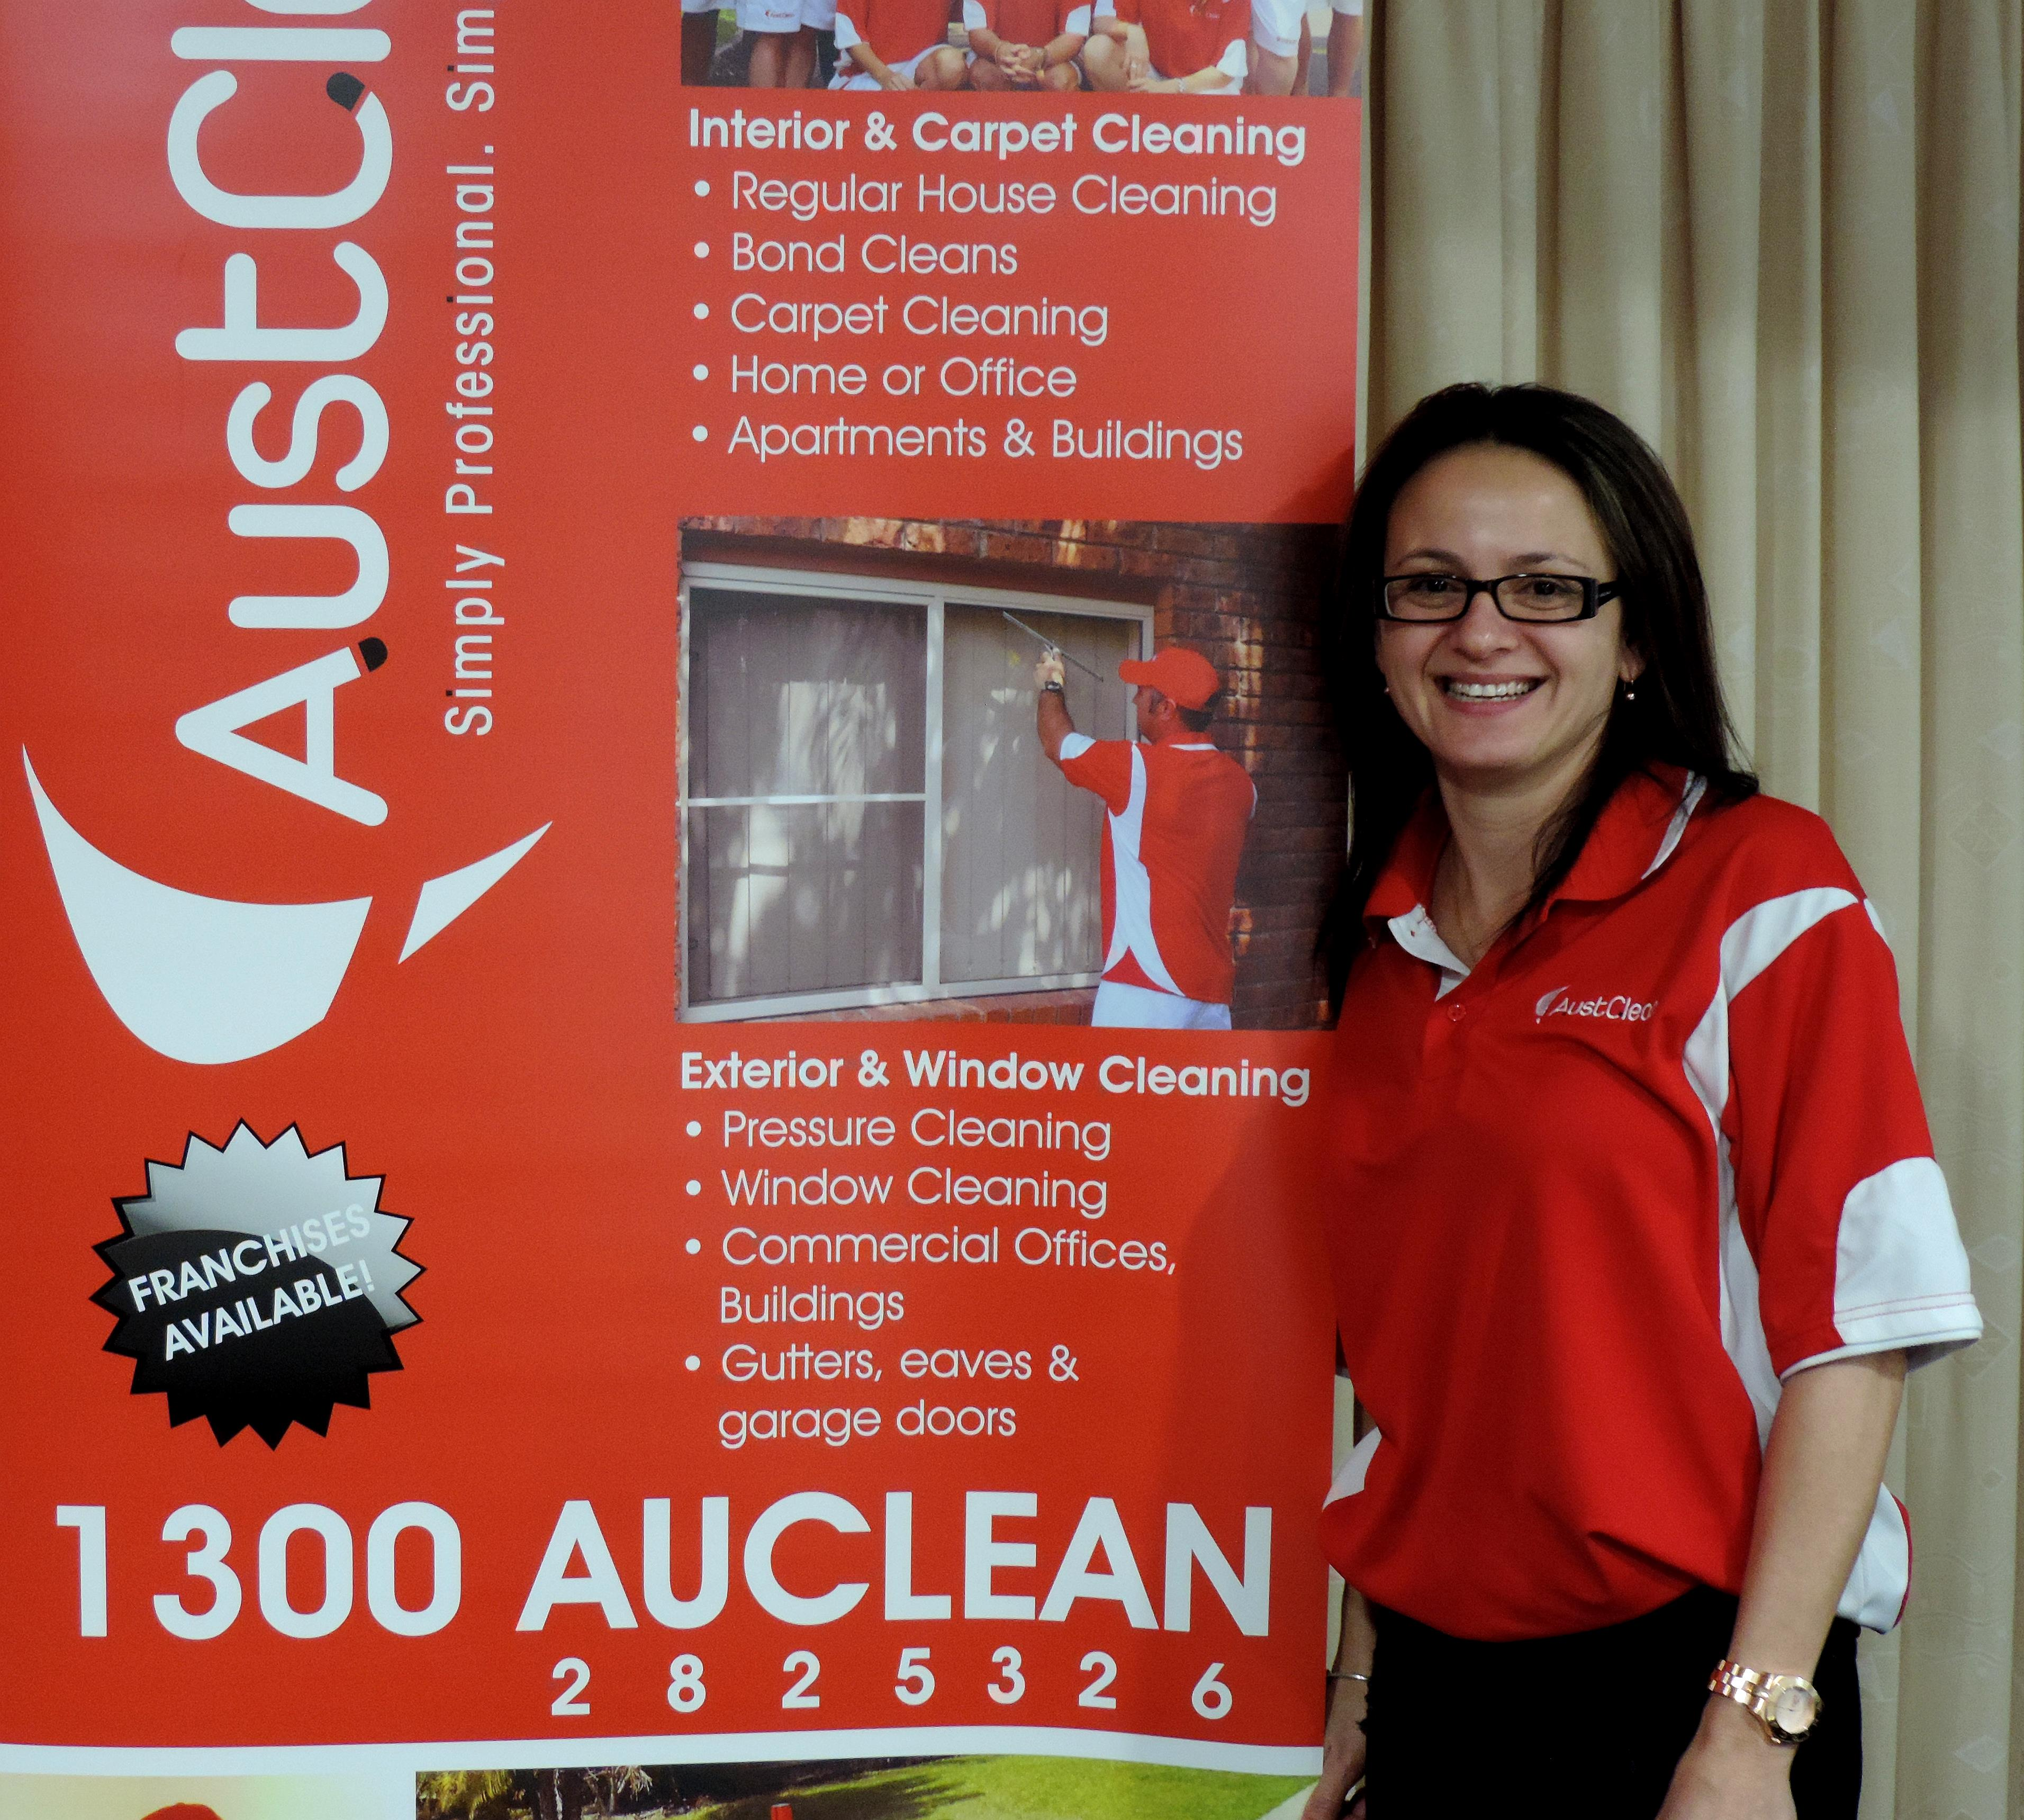 Austclean Interior and carpet cleaning